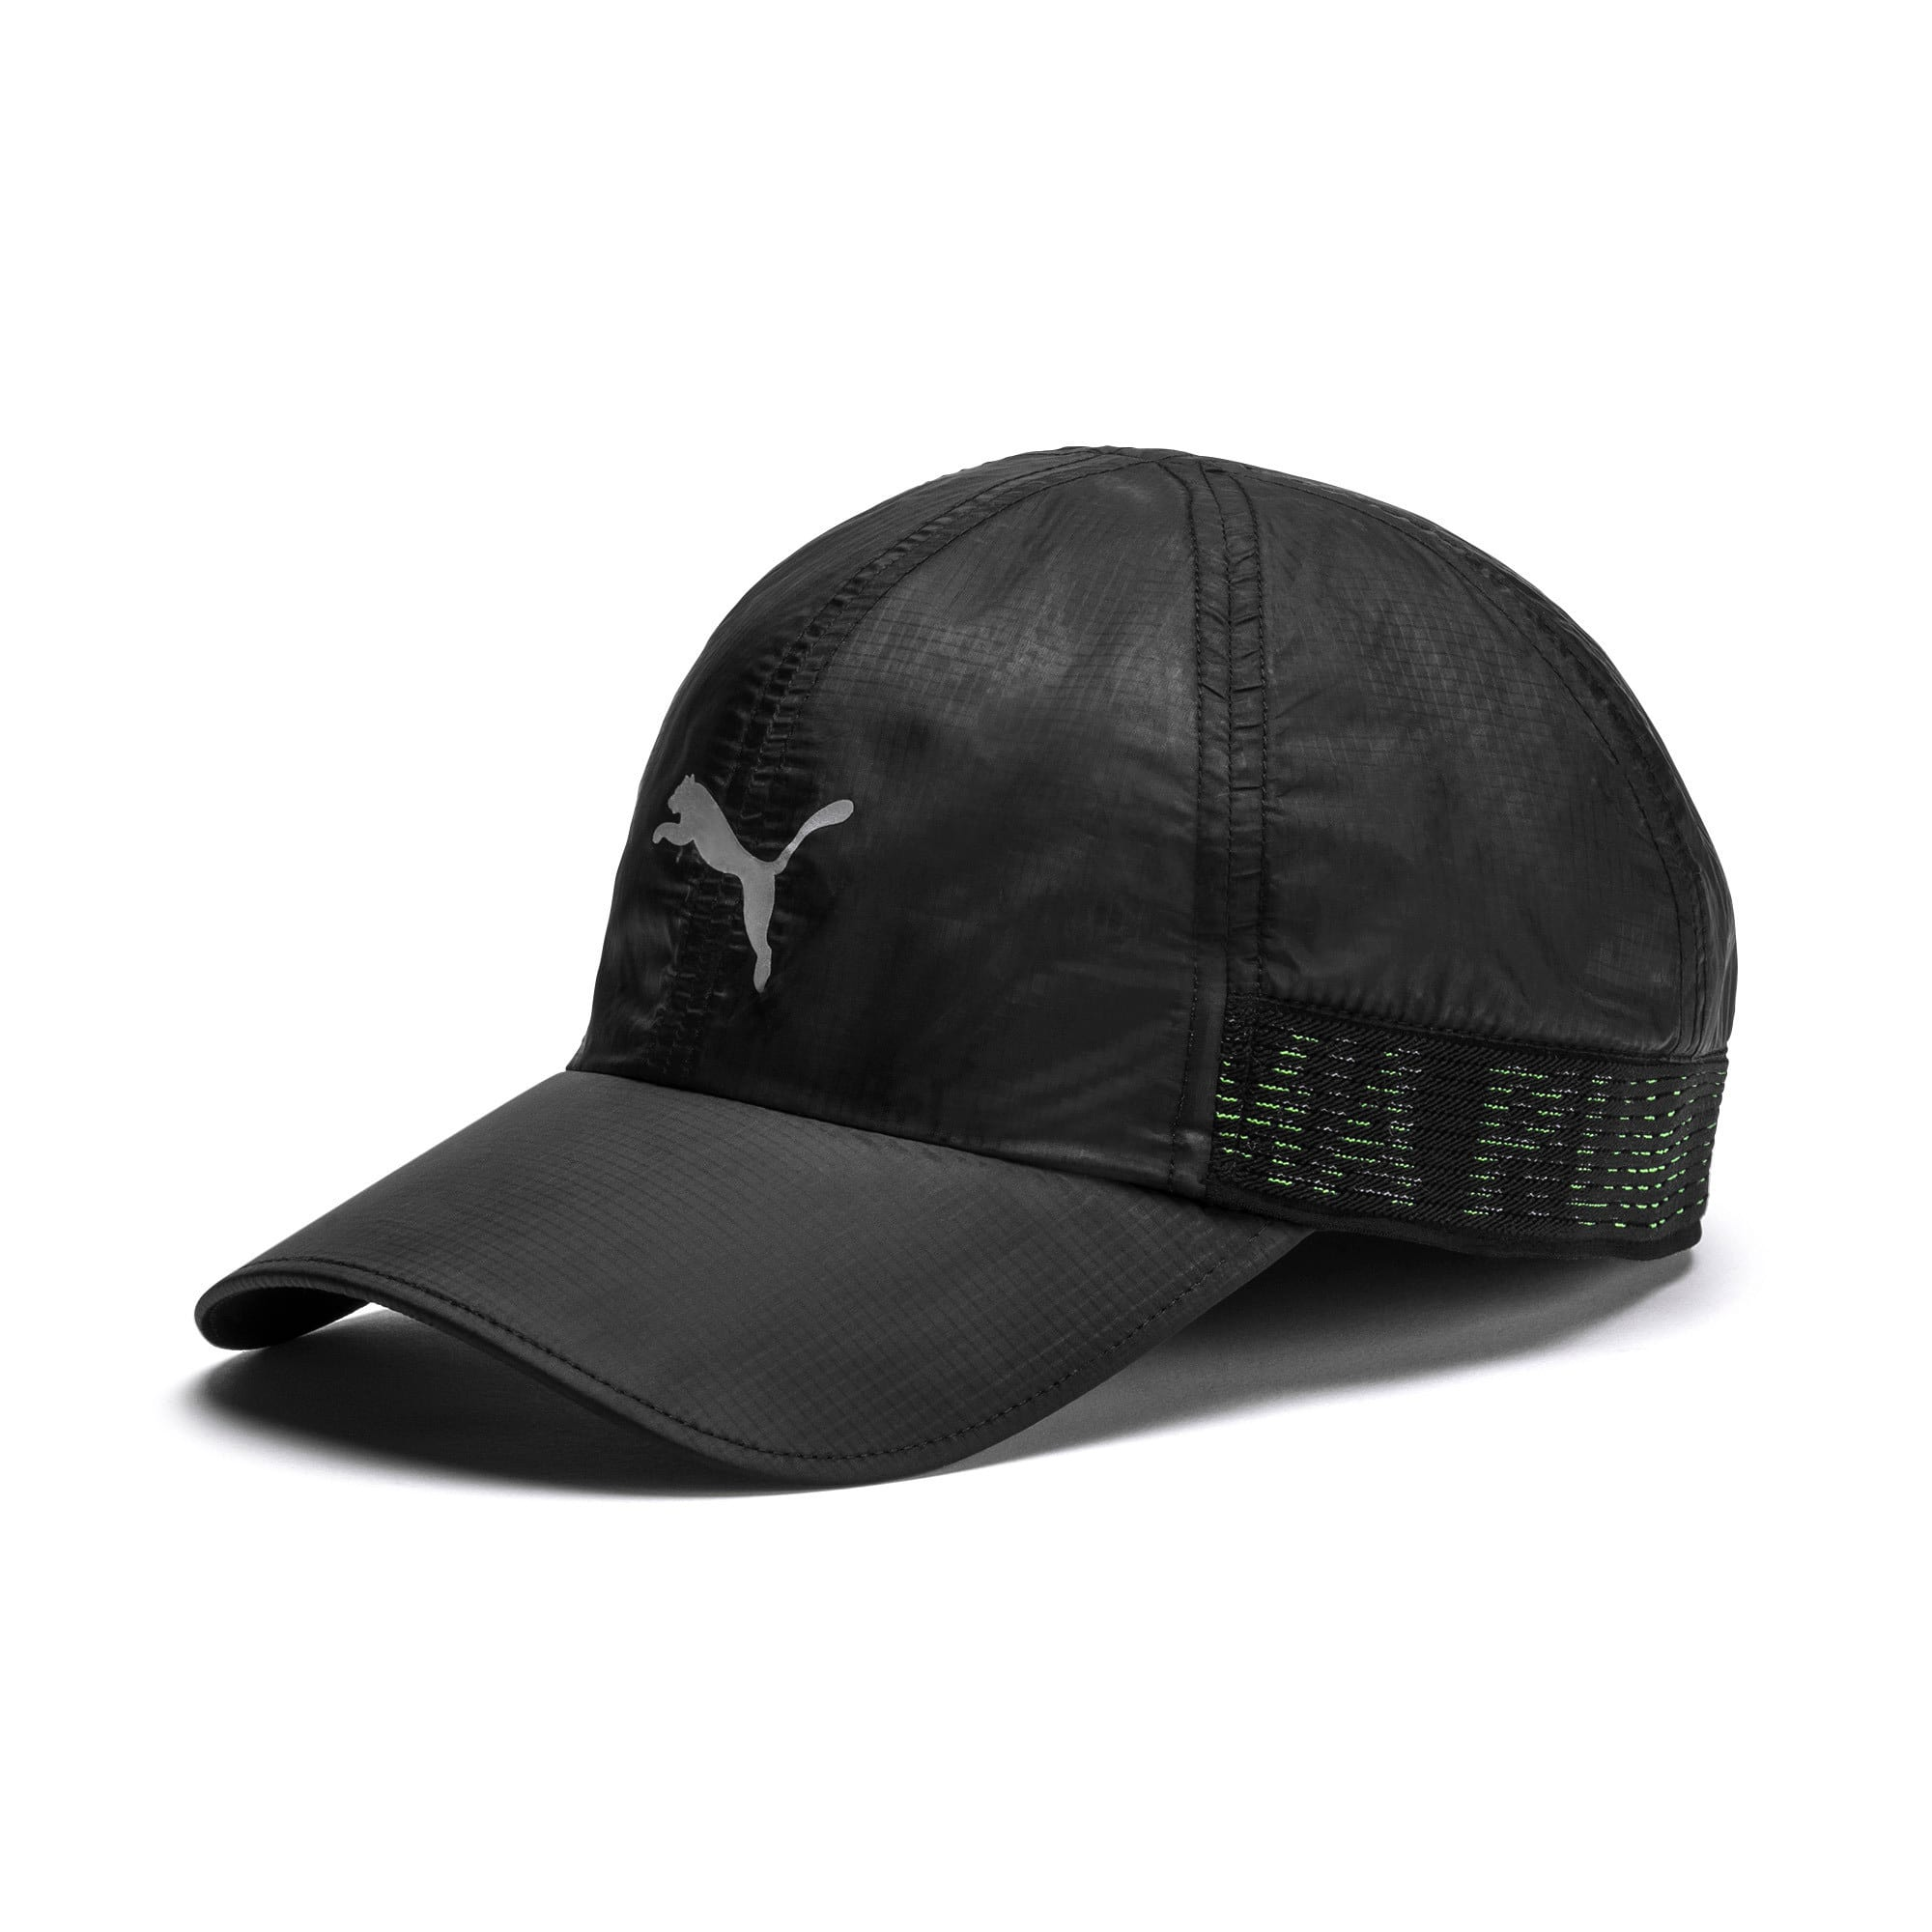 Thumbnail 1 of Scuderia Ferrari Performance Cap, Puma Black, medium